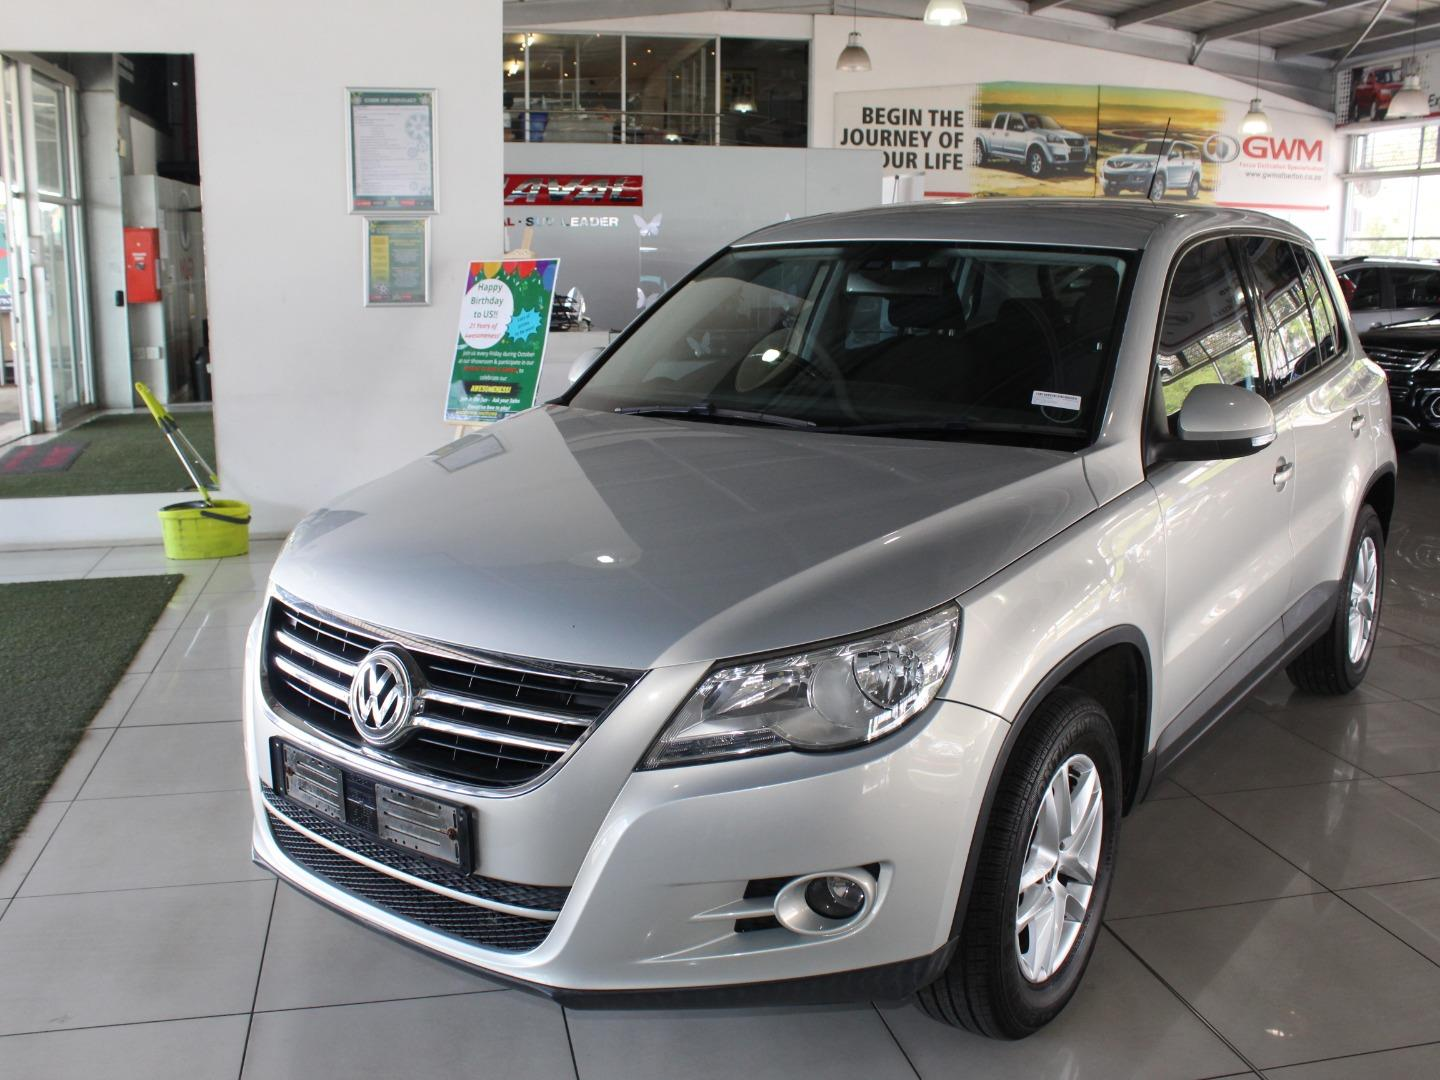 2010 Volkswagen Tiguan 1.4TSI Trend-and-Fun 4Motion- Picture 8